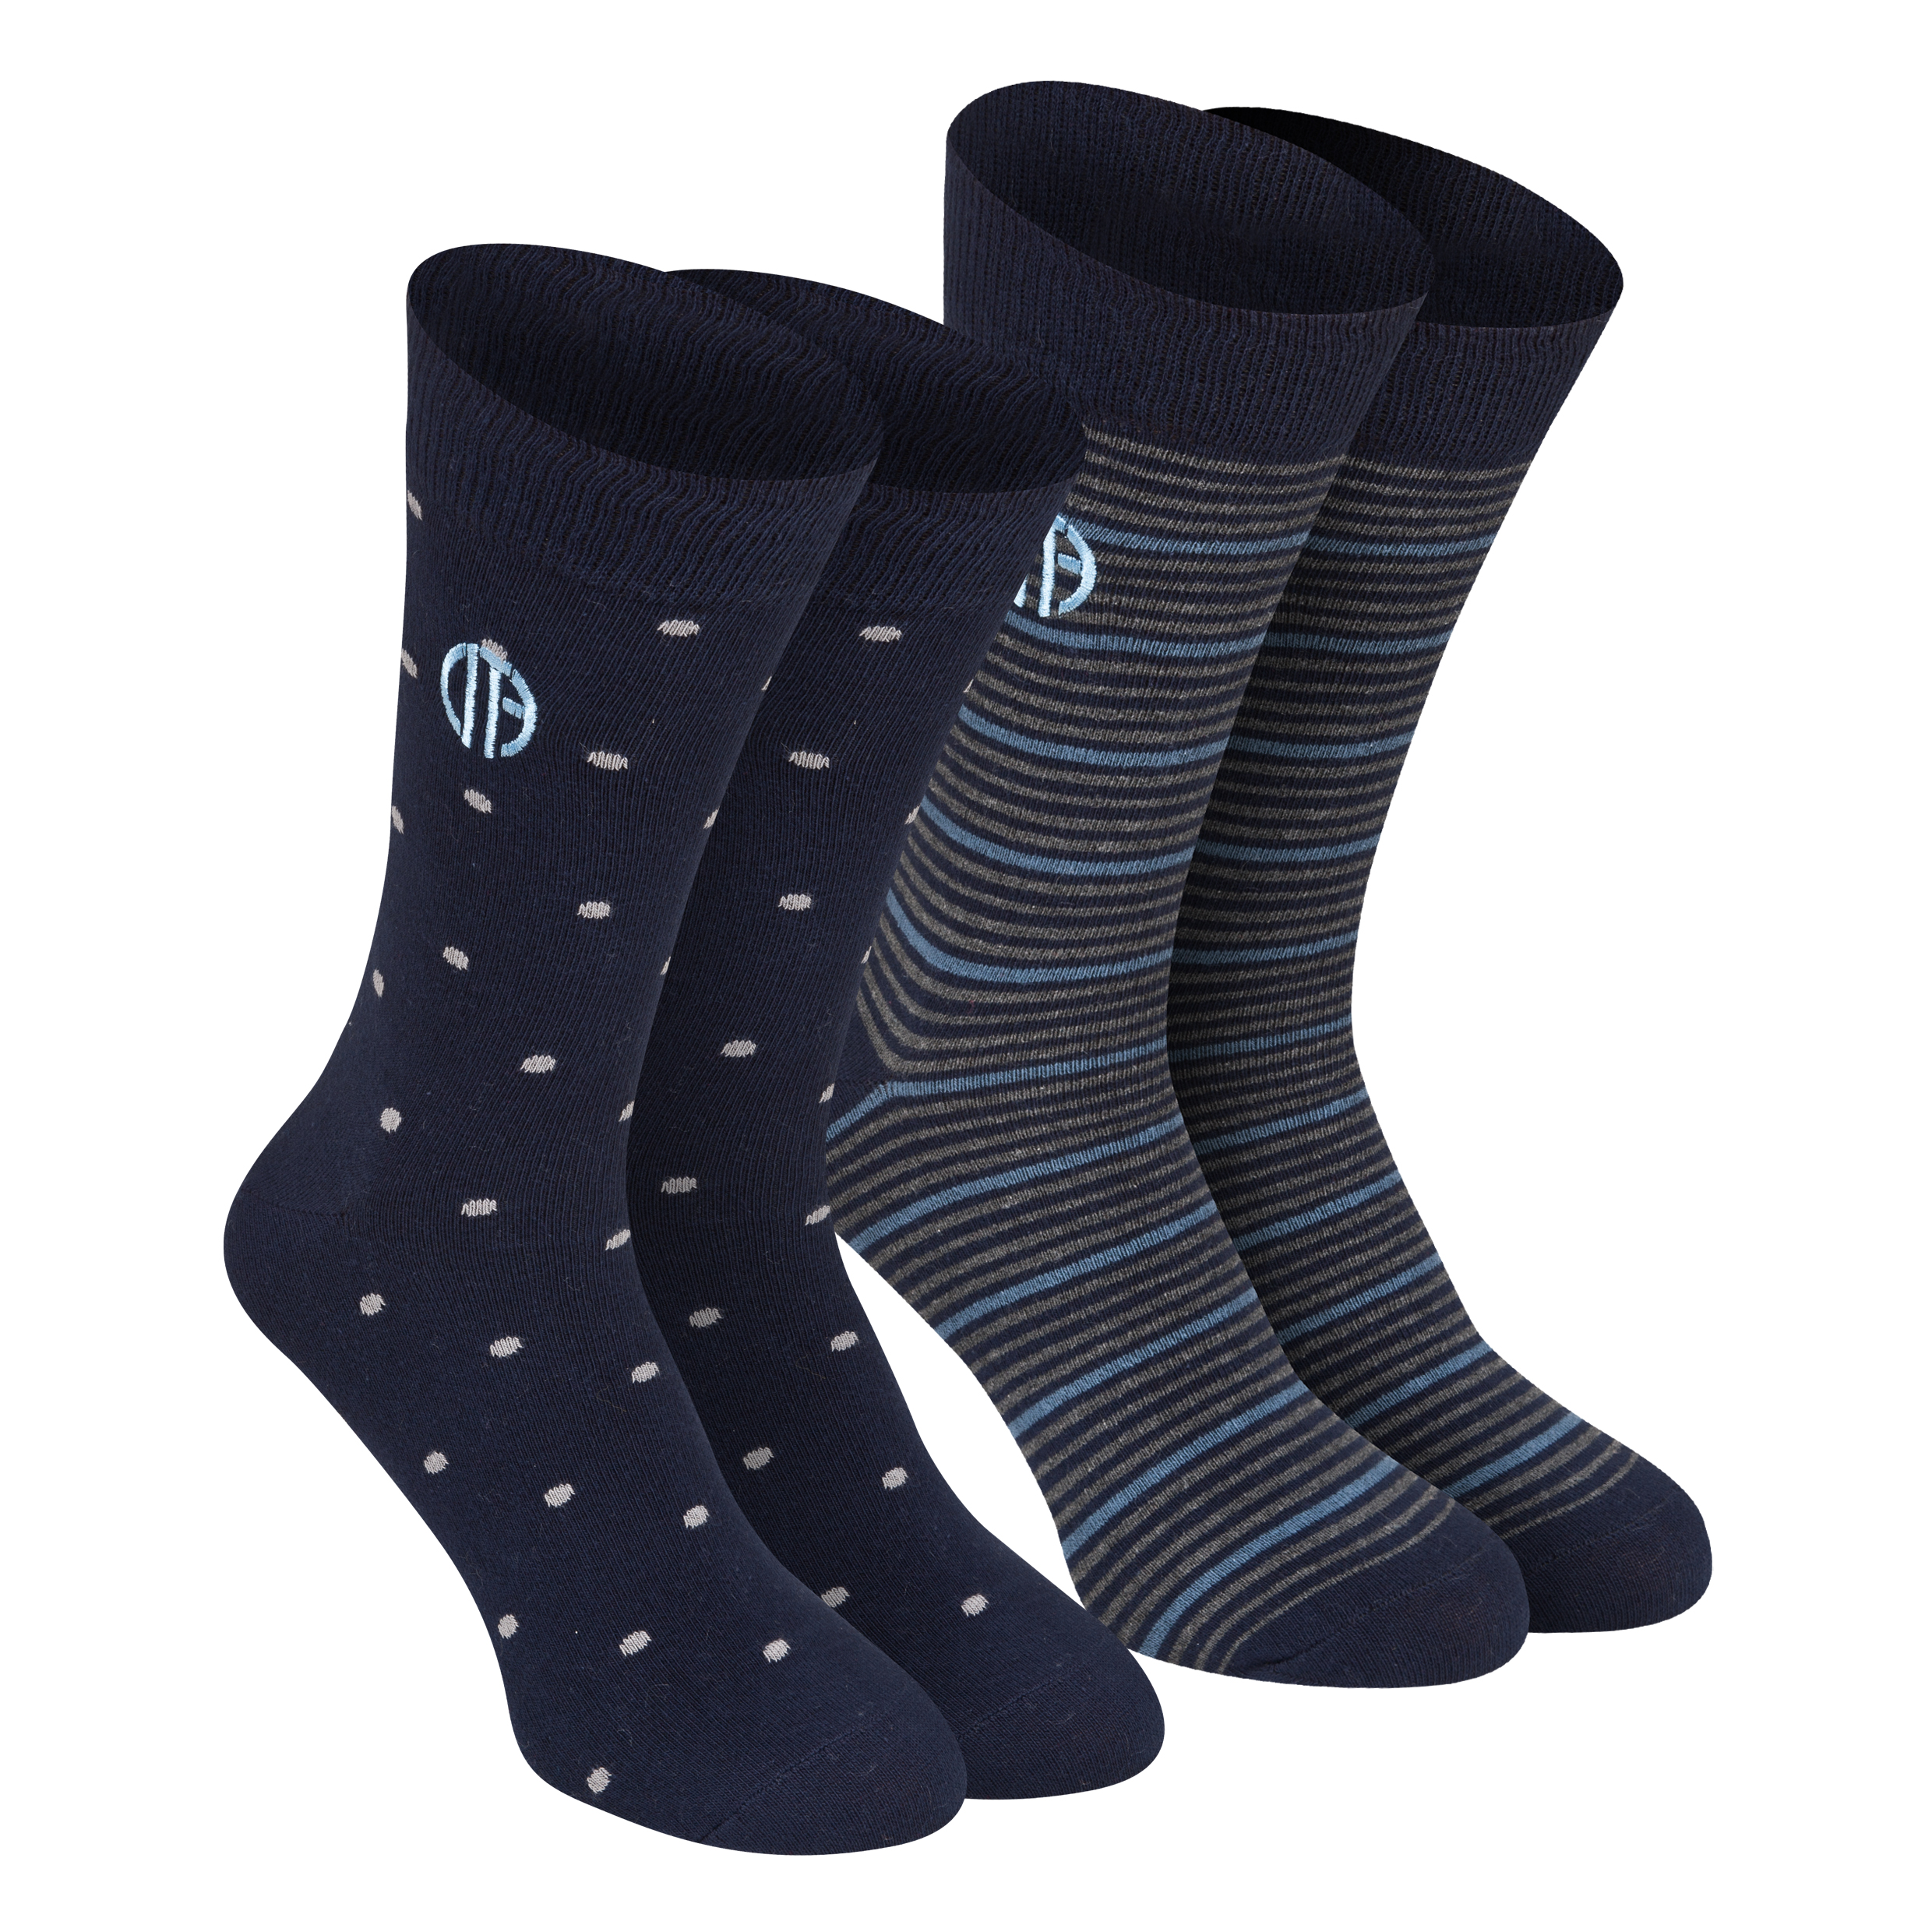 Manchester City 2PK Dress Socks - Mens Navy